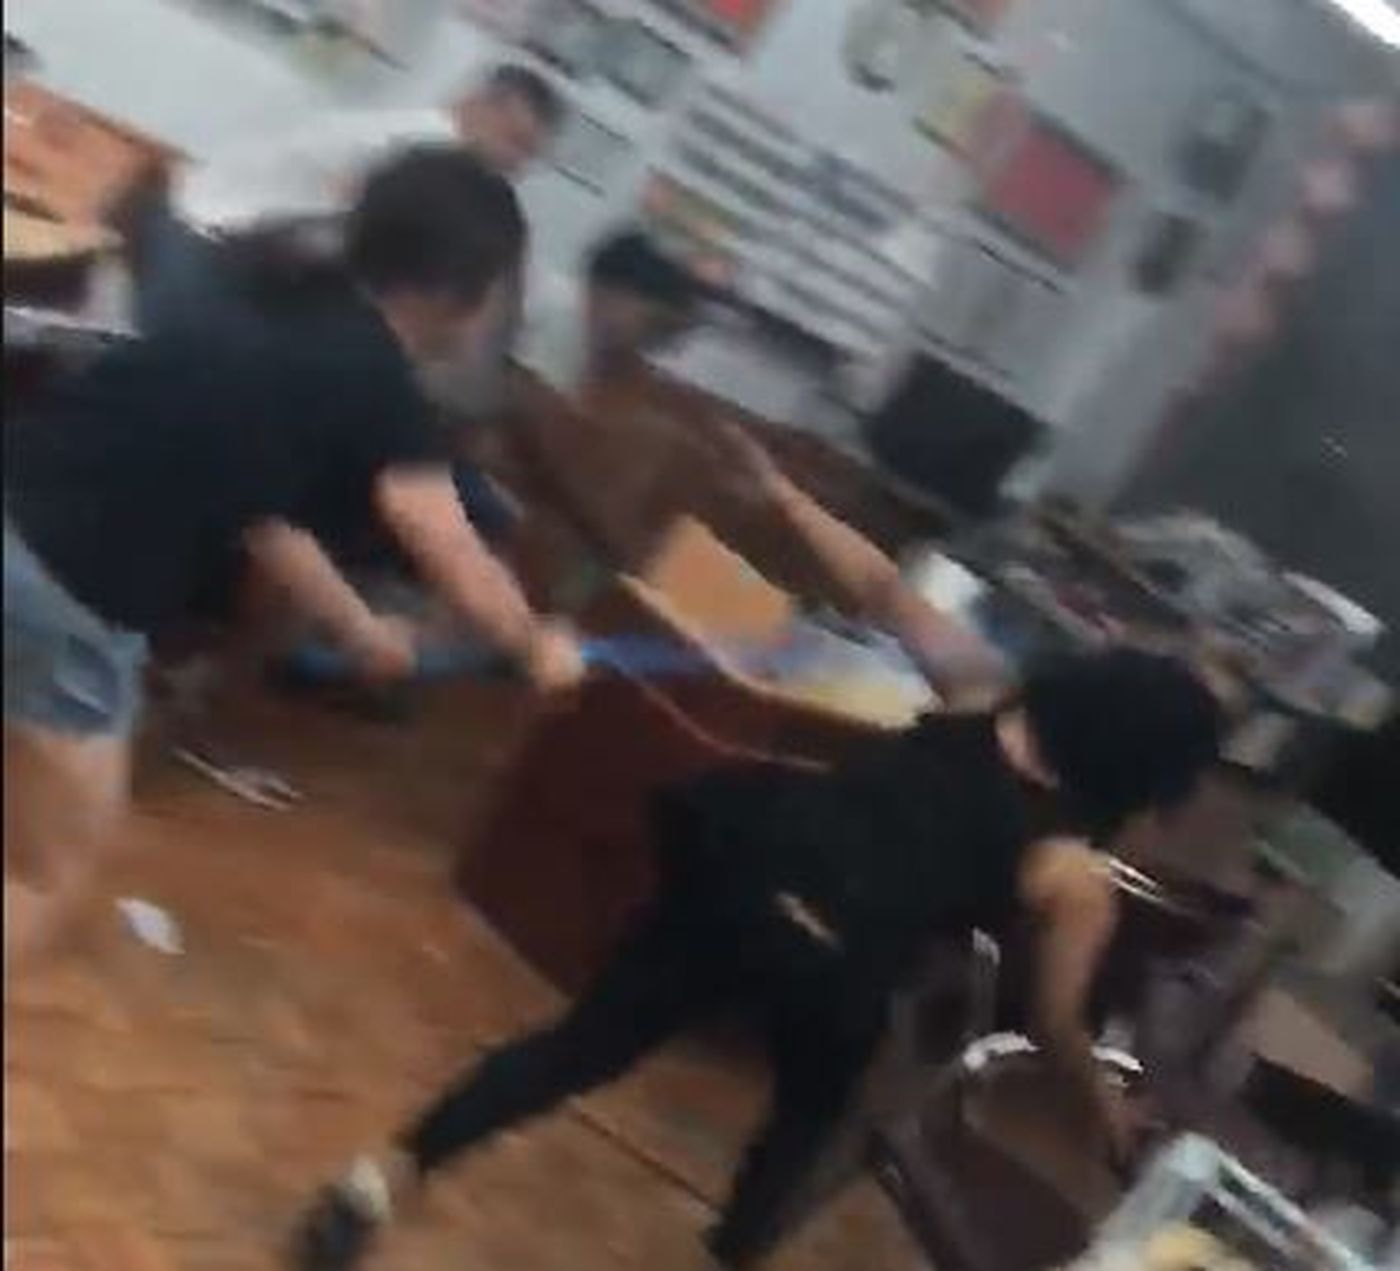 Brooklyn Nail Salon Employees Assault Black Women After They Refuse to Pay for Bad Service